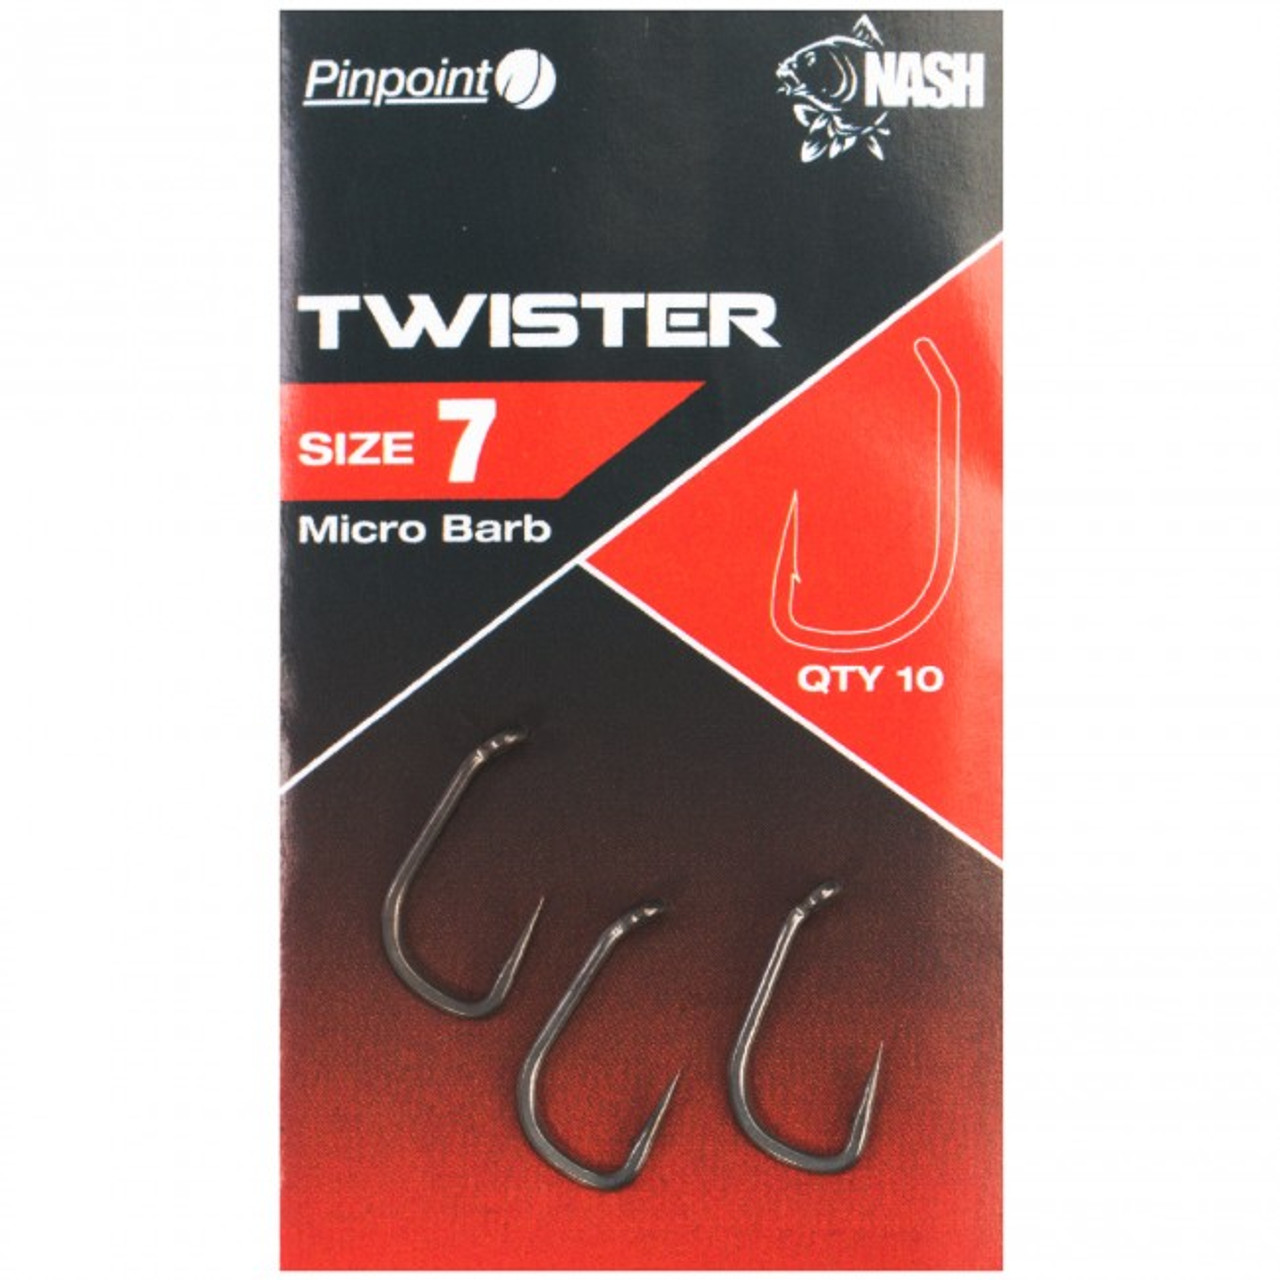 New Nash Fang Uni Micro Barbed Hooks Carp Fishing Pack of 10 All Sizes